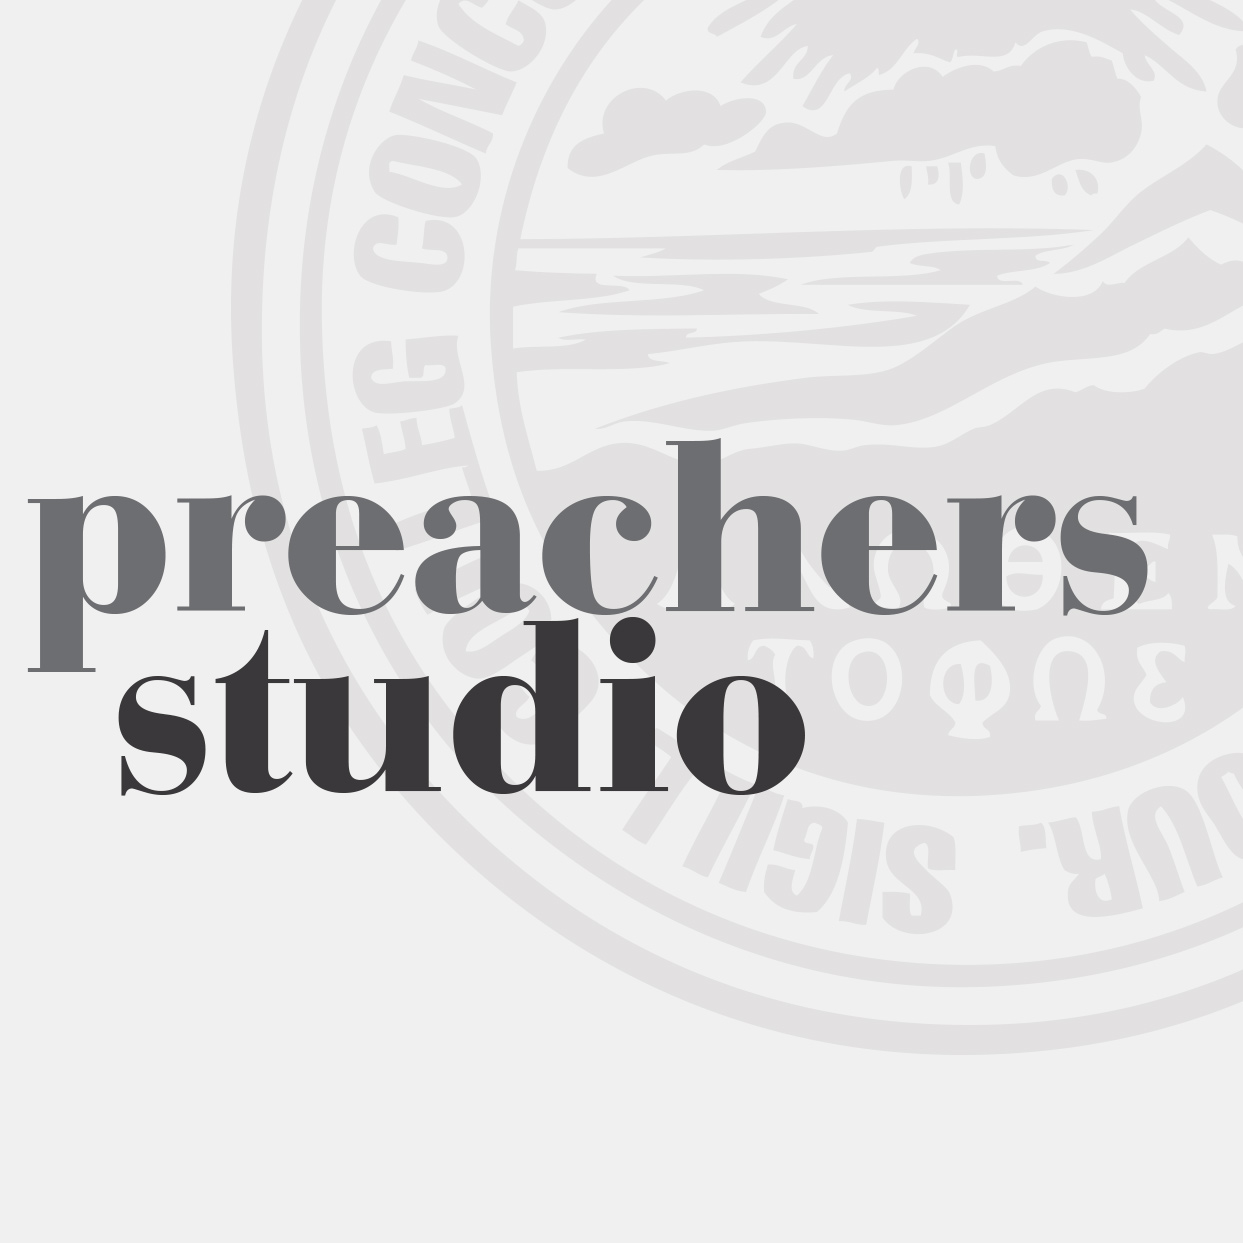 Preachers Studio: Todd Jones